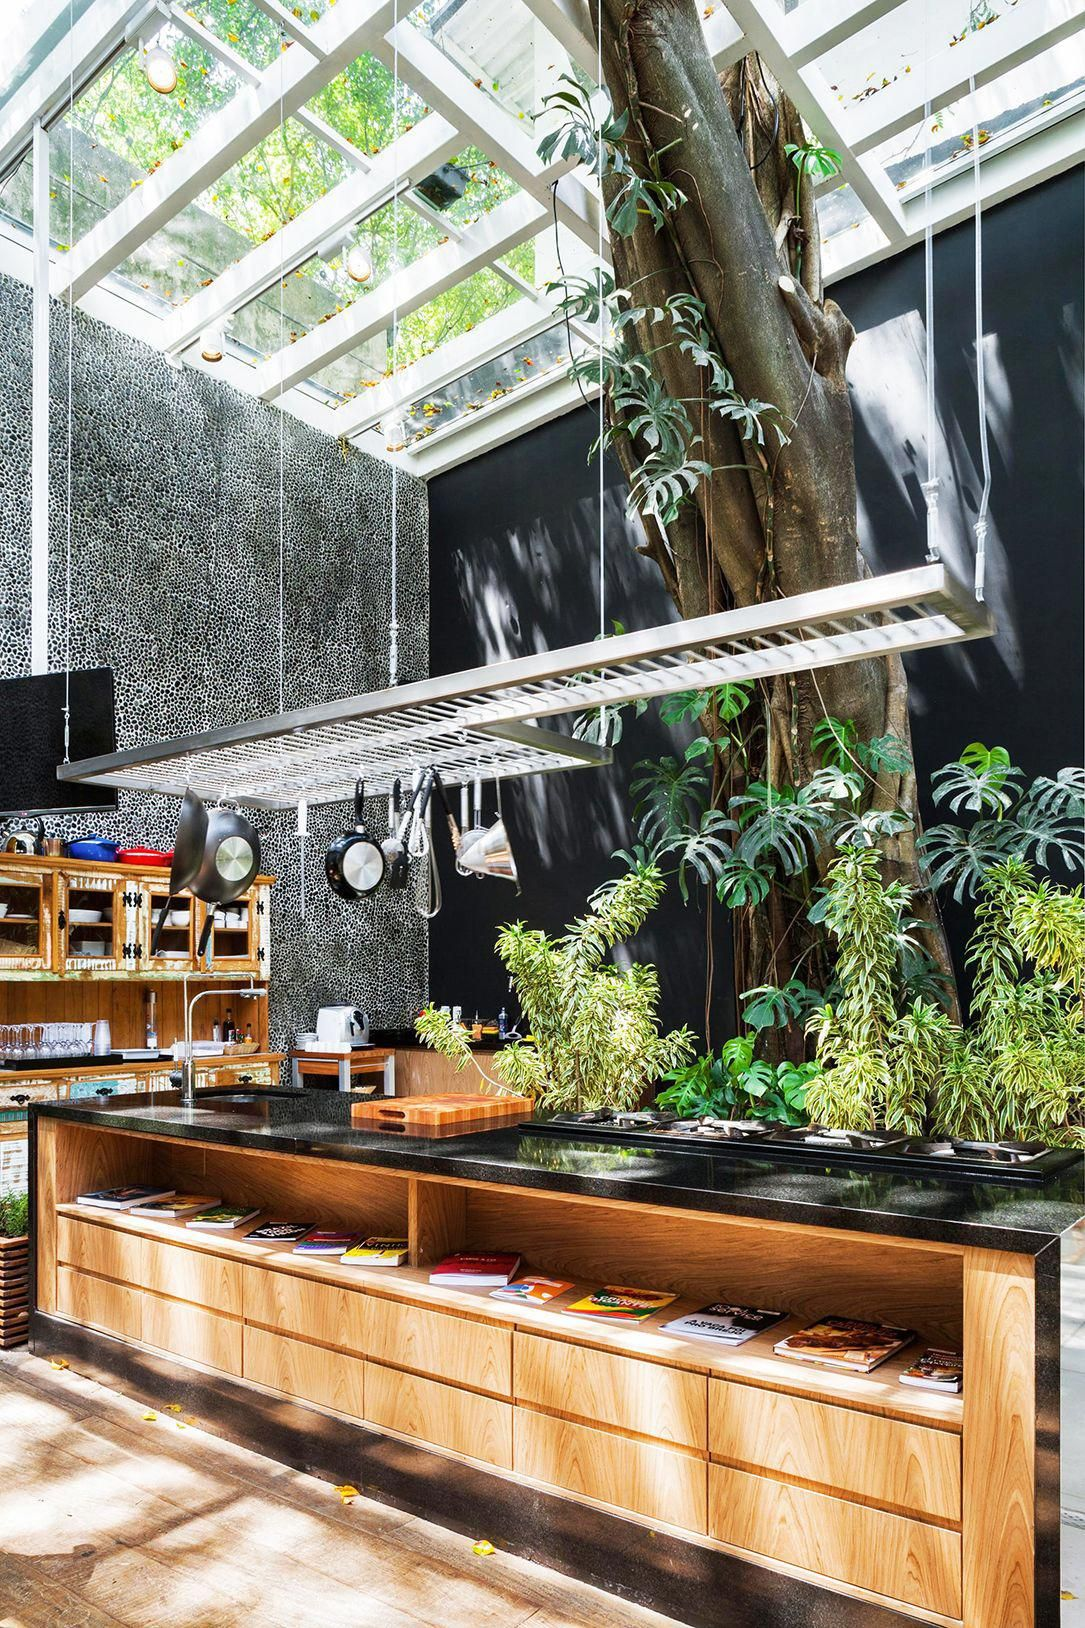 Our Hearts Skipped A Beat Upon Seeing This Majestic California Home Outdoor Kitchen Design Dream Kitchens Design Kitchen Accessories Decor